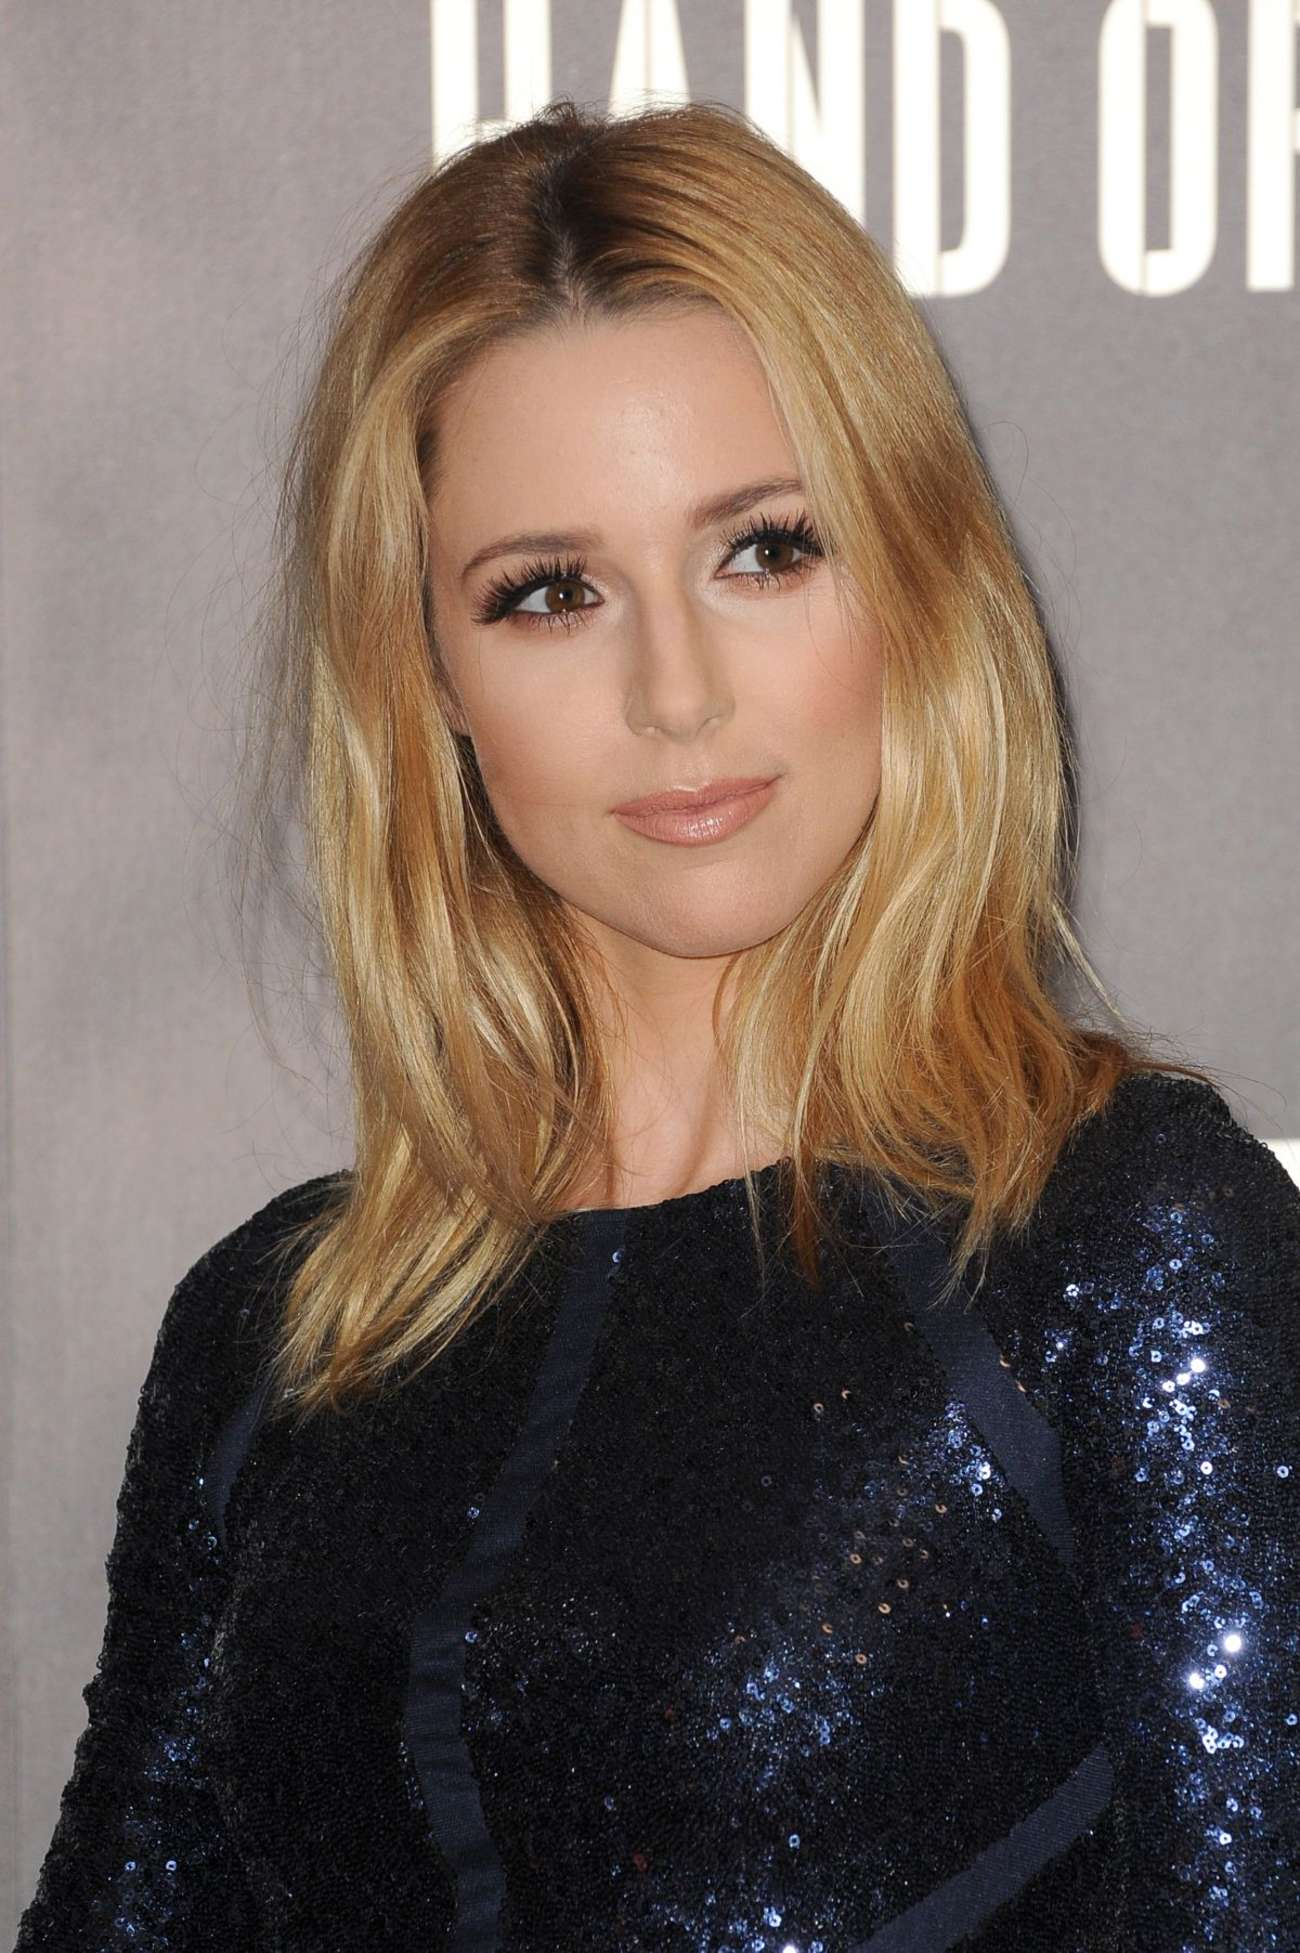 Alona Tal Hand Of God Premiere in London